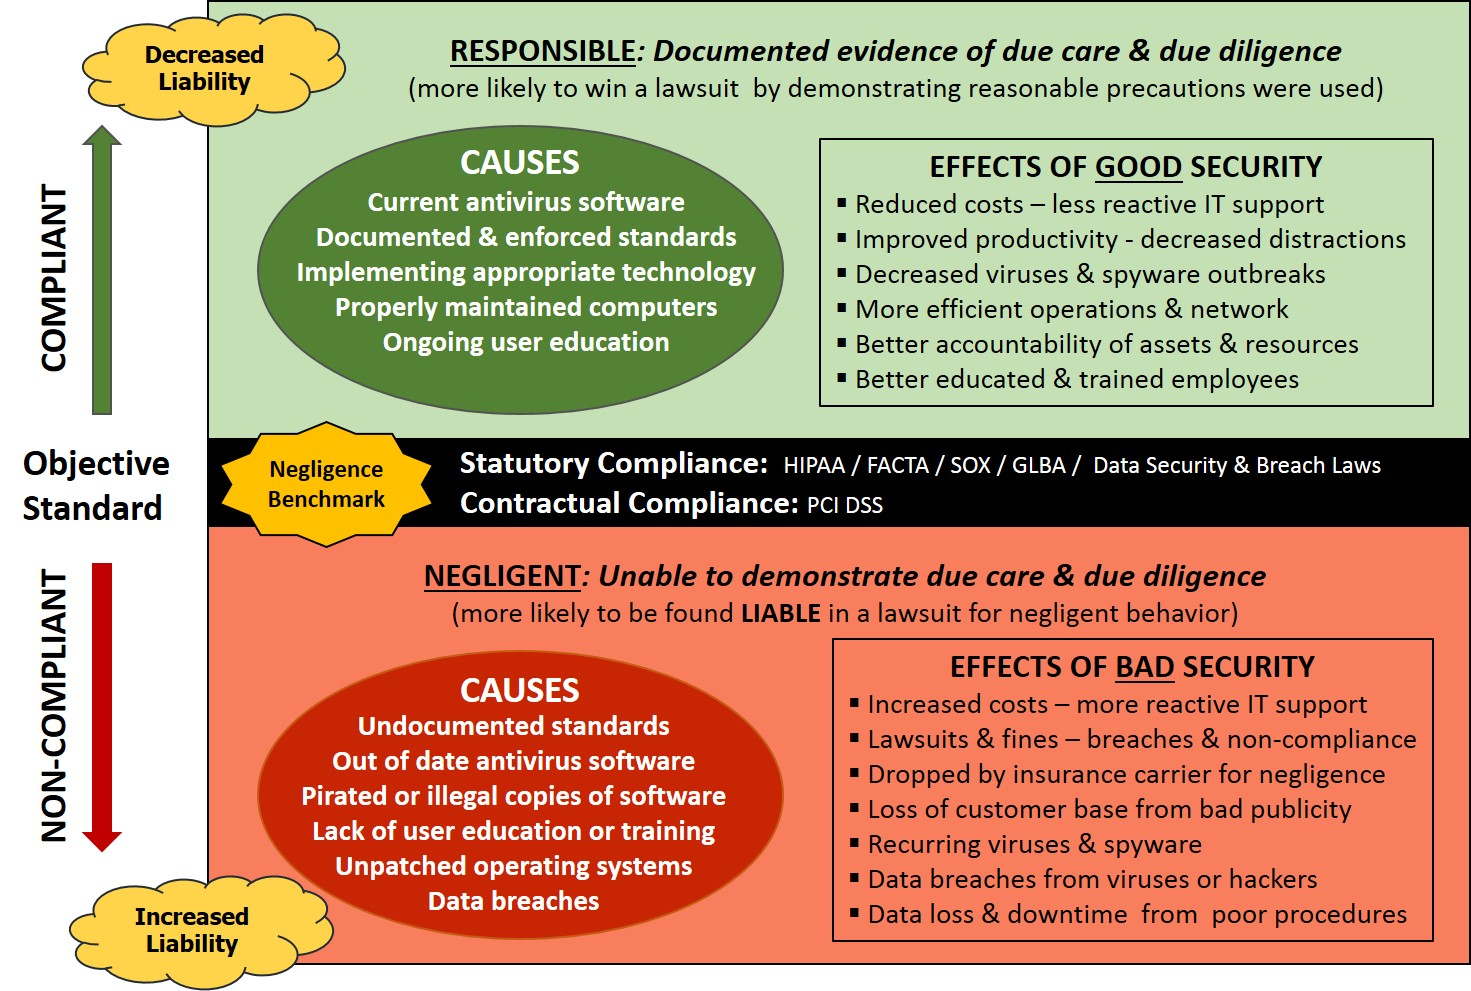 cybersecurity-negligence-understanding-due-care-due-diligence-information-security-documentation.jpg